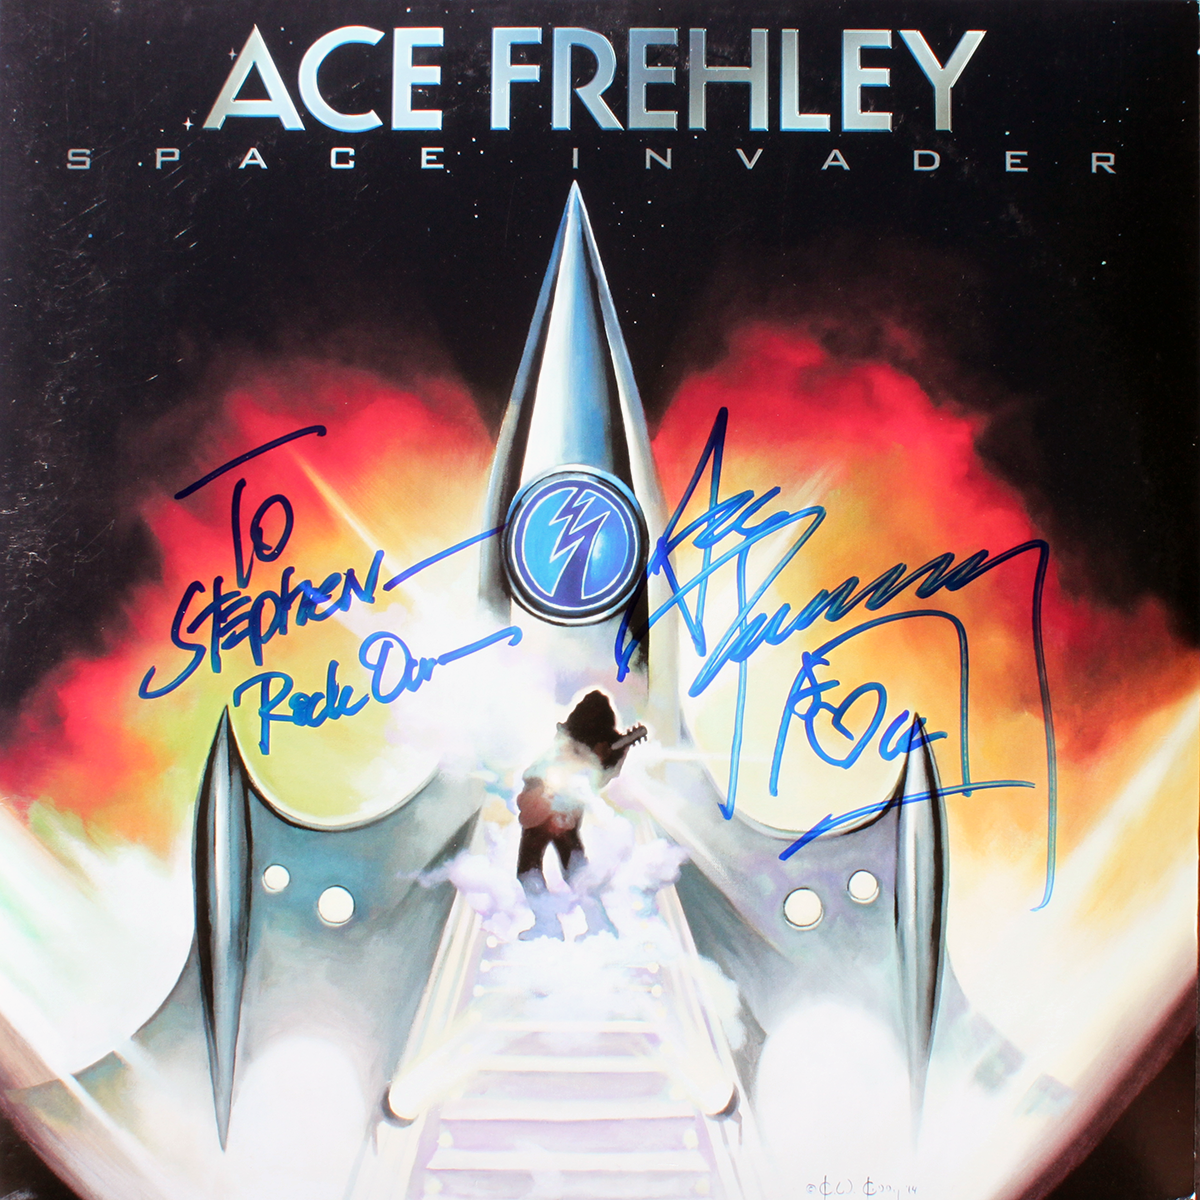 Ace Frehely: Album #1